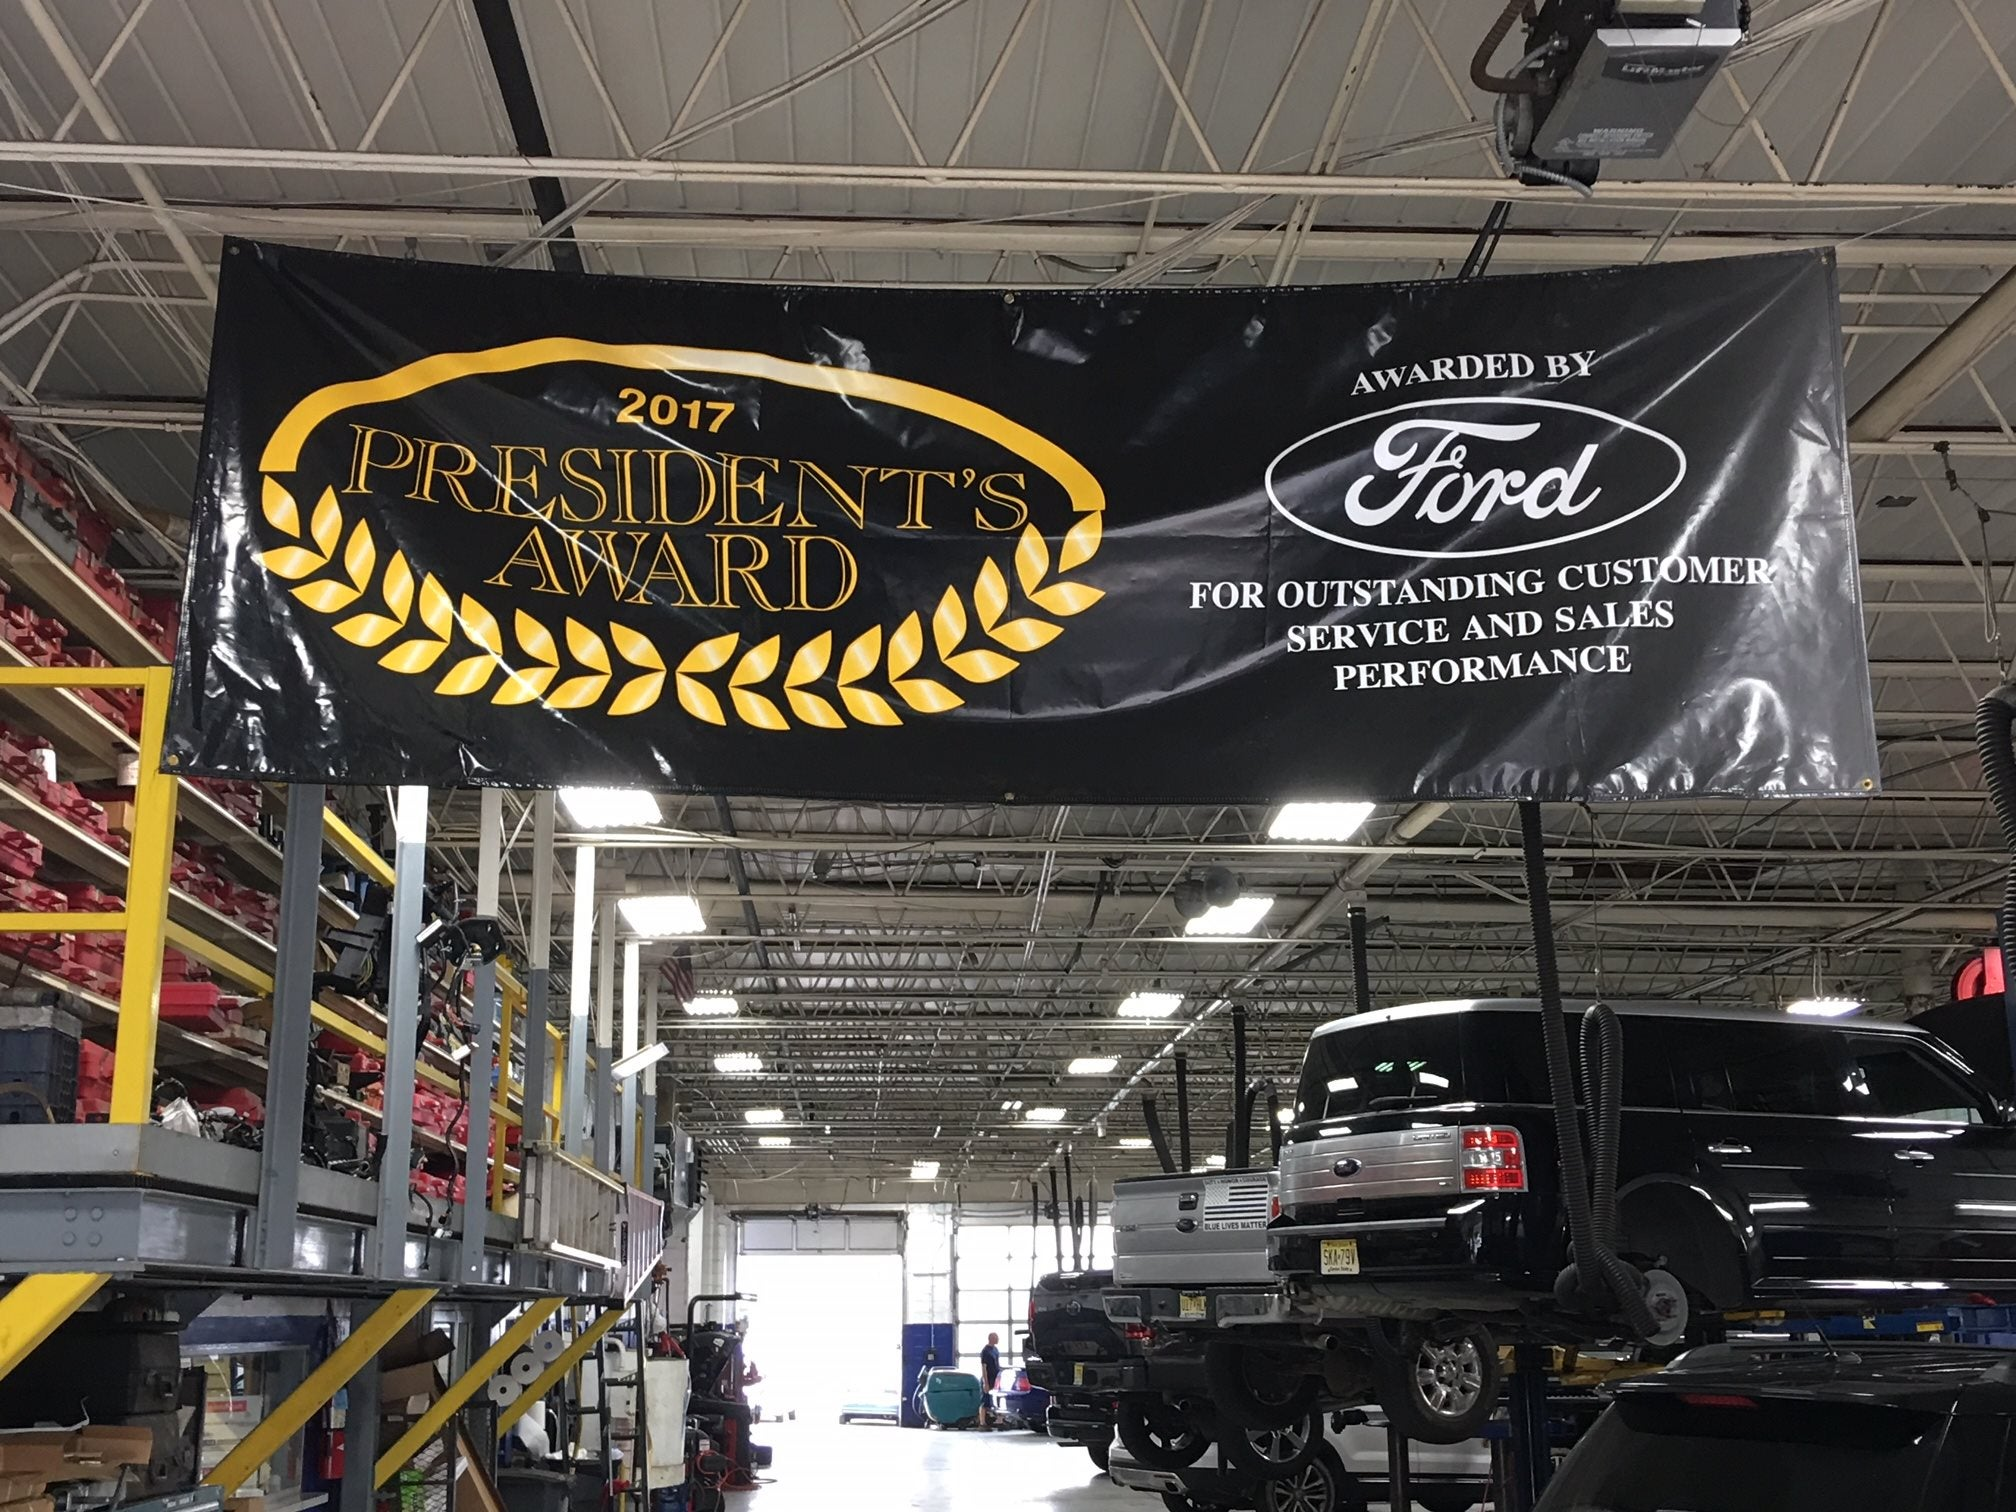 Auto Repair and Vehicle service at Ditschman/Flemington Ford in Flemington, NJ